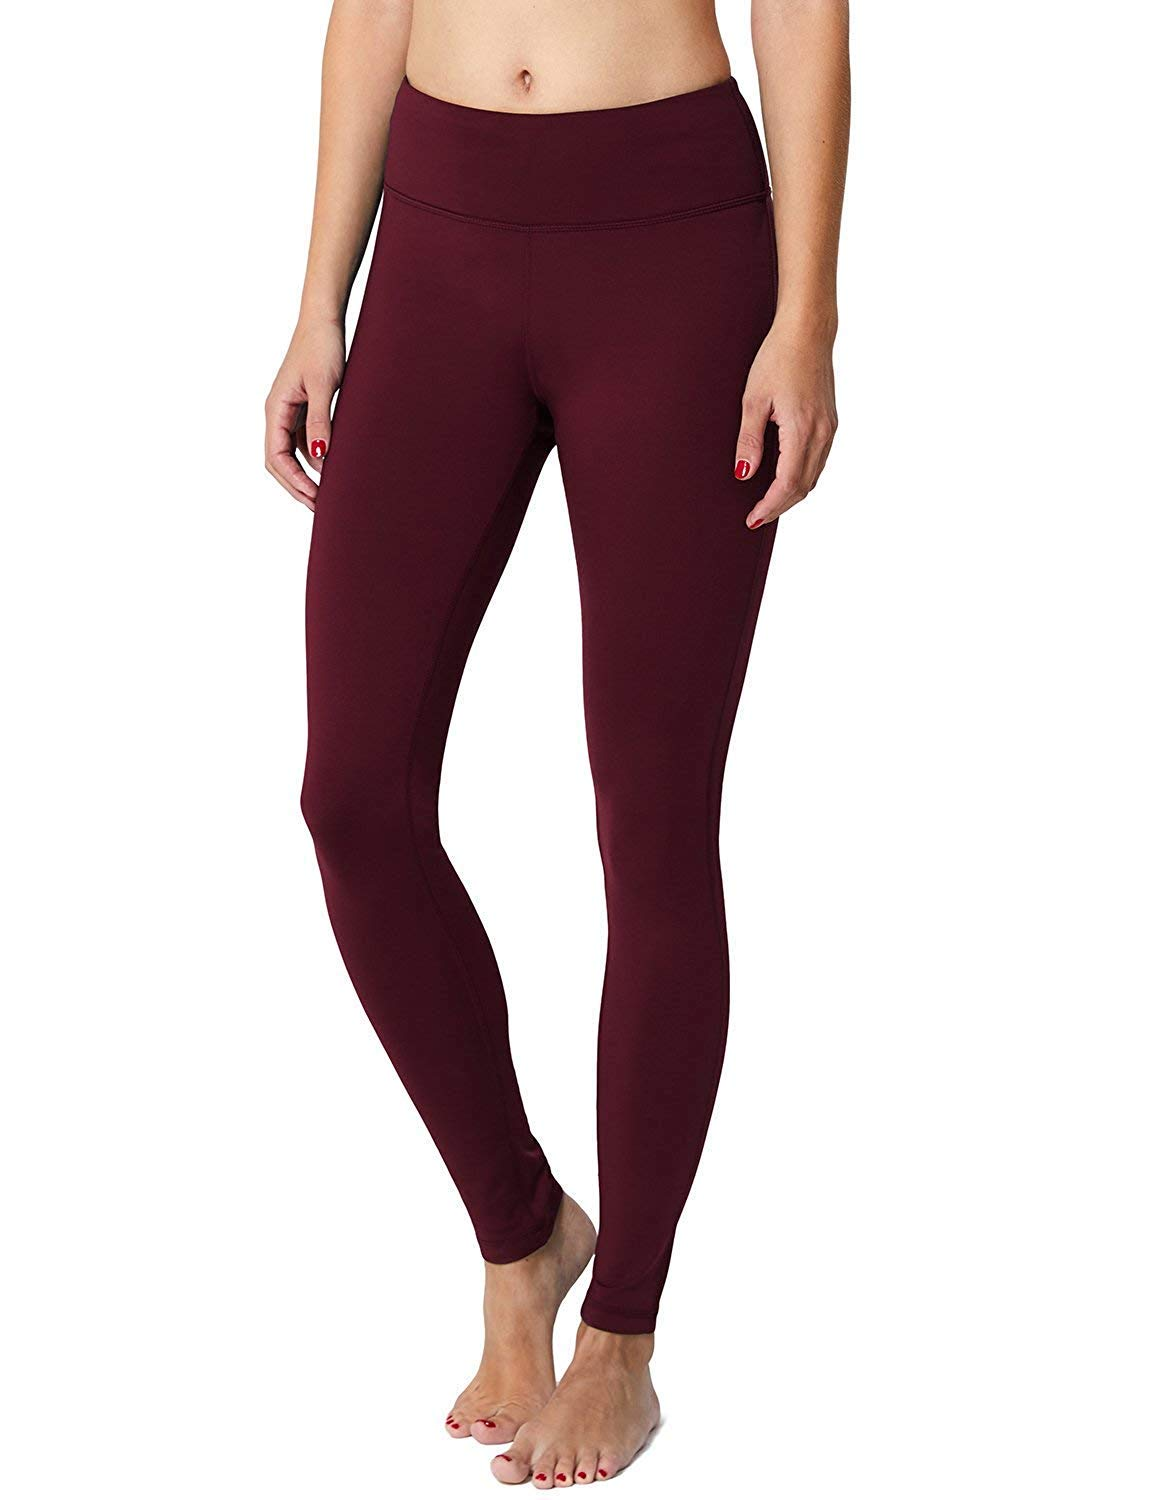 e610867073199 Had I gone up a size they would surely fit too large in the waist. Read  more. By Sarah. See all customer reviews · Baleaf Women s Fleece Lined  Leggings Yoga ...